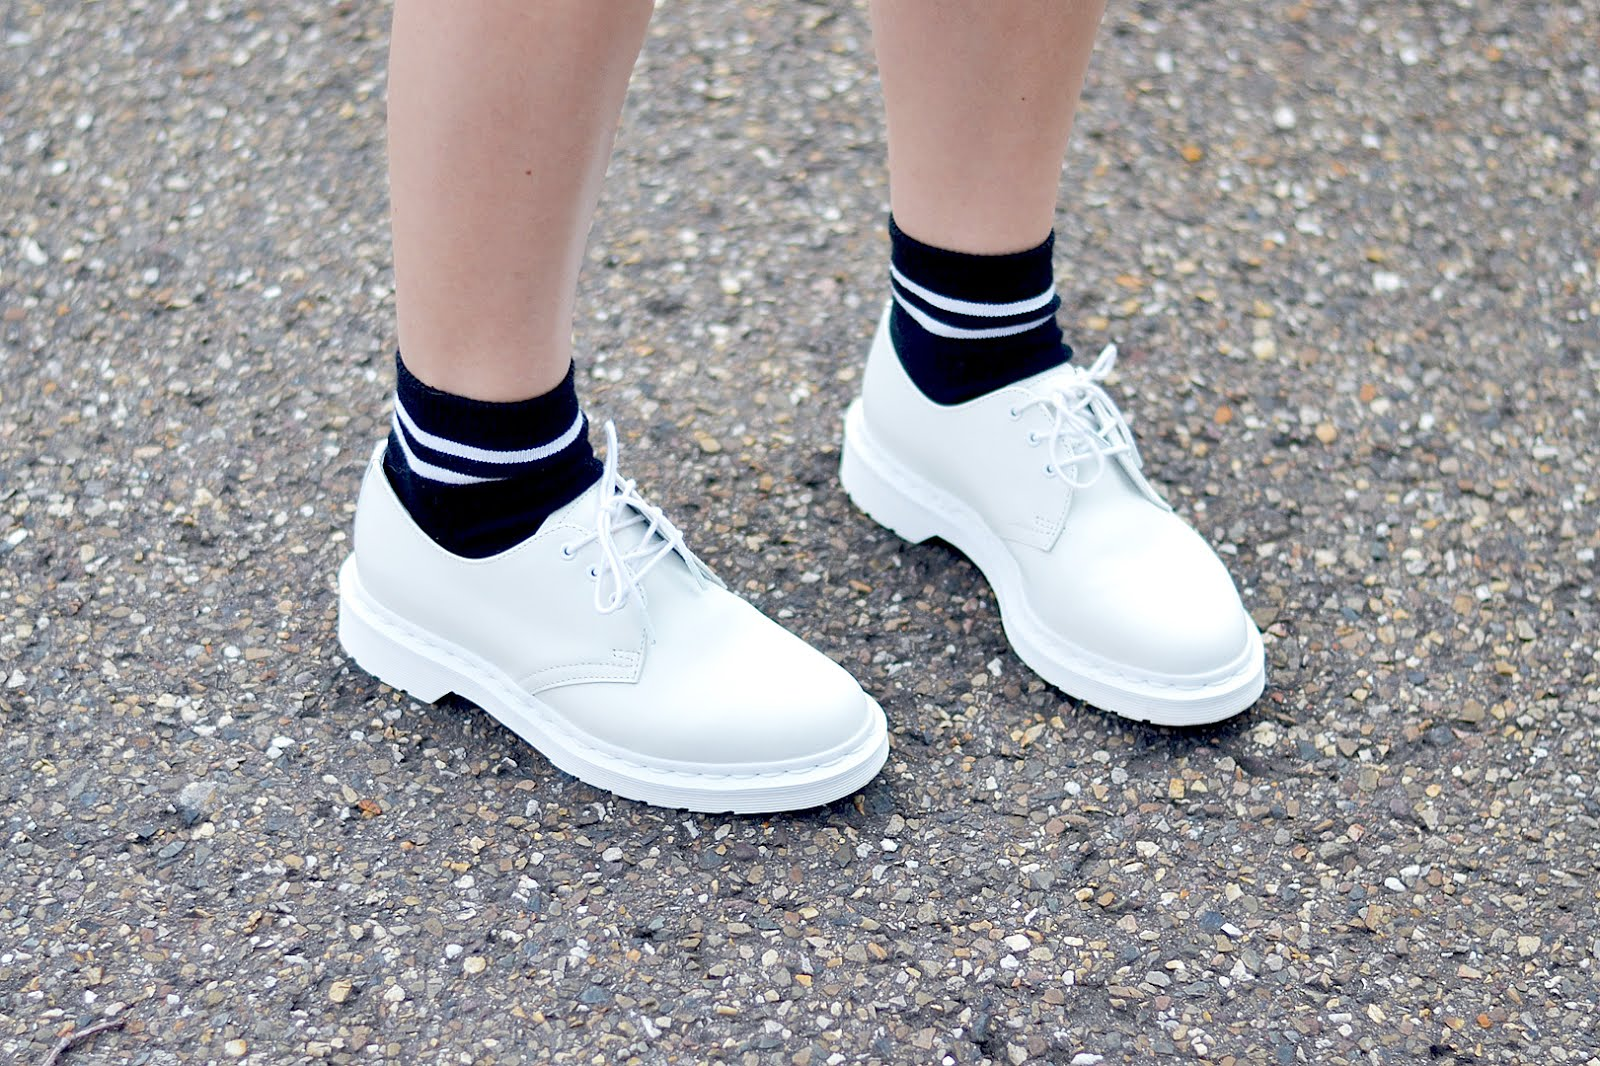 Mono white dr martens, grey striped shirt, zara skorts, sport socks, ootd